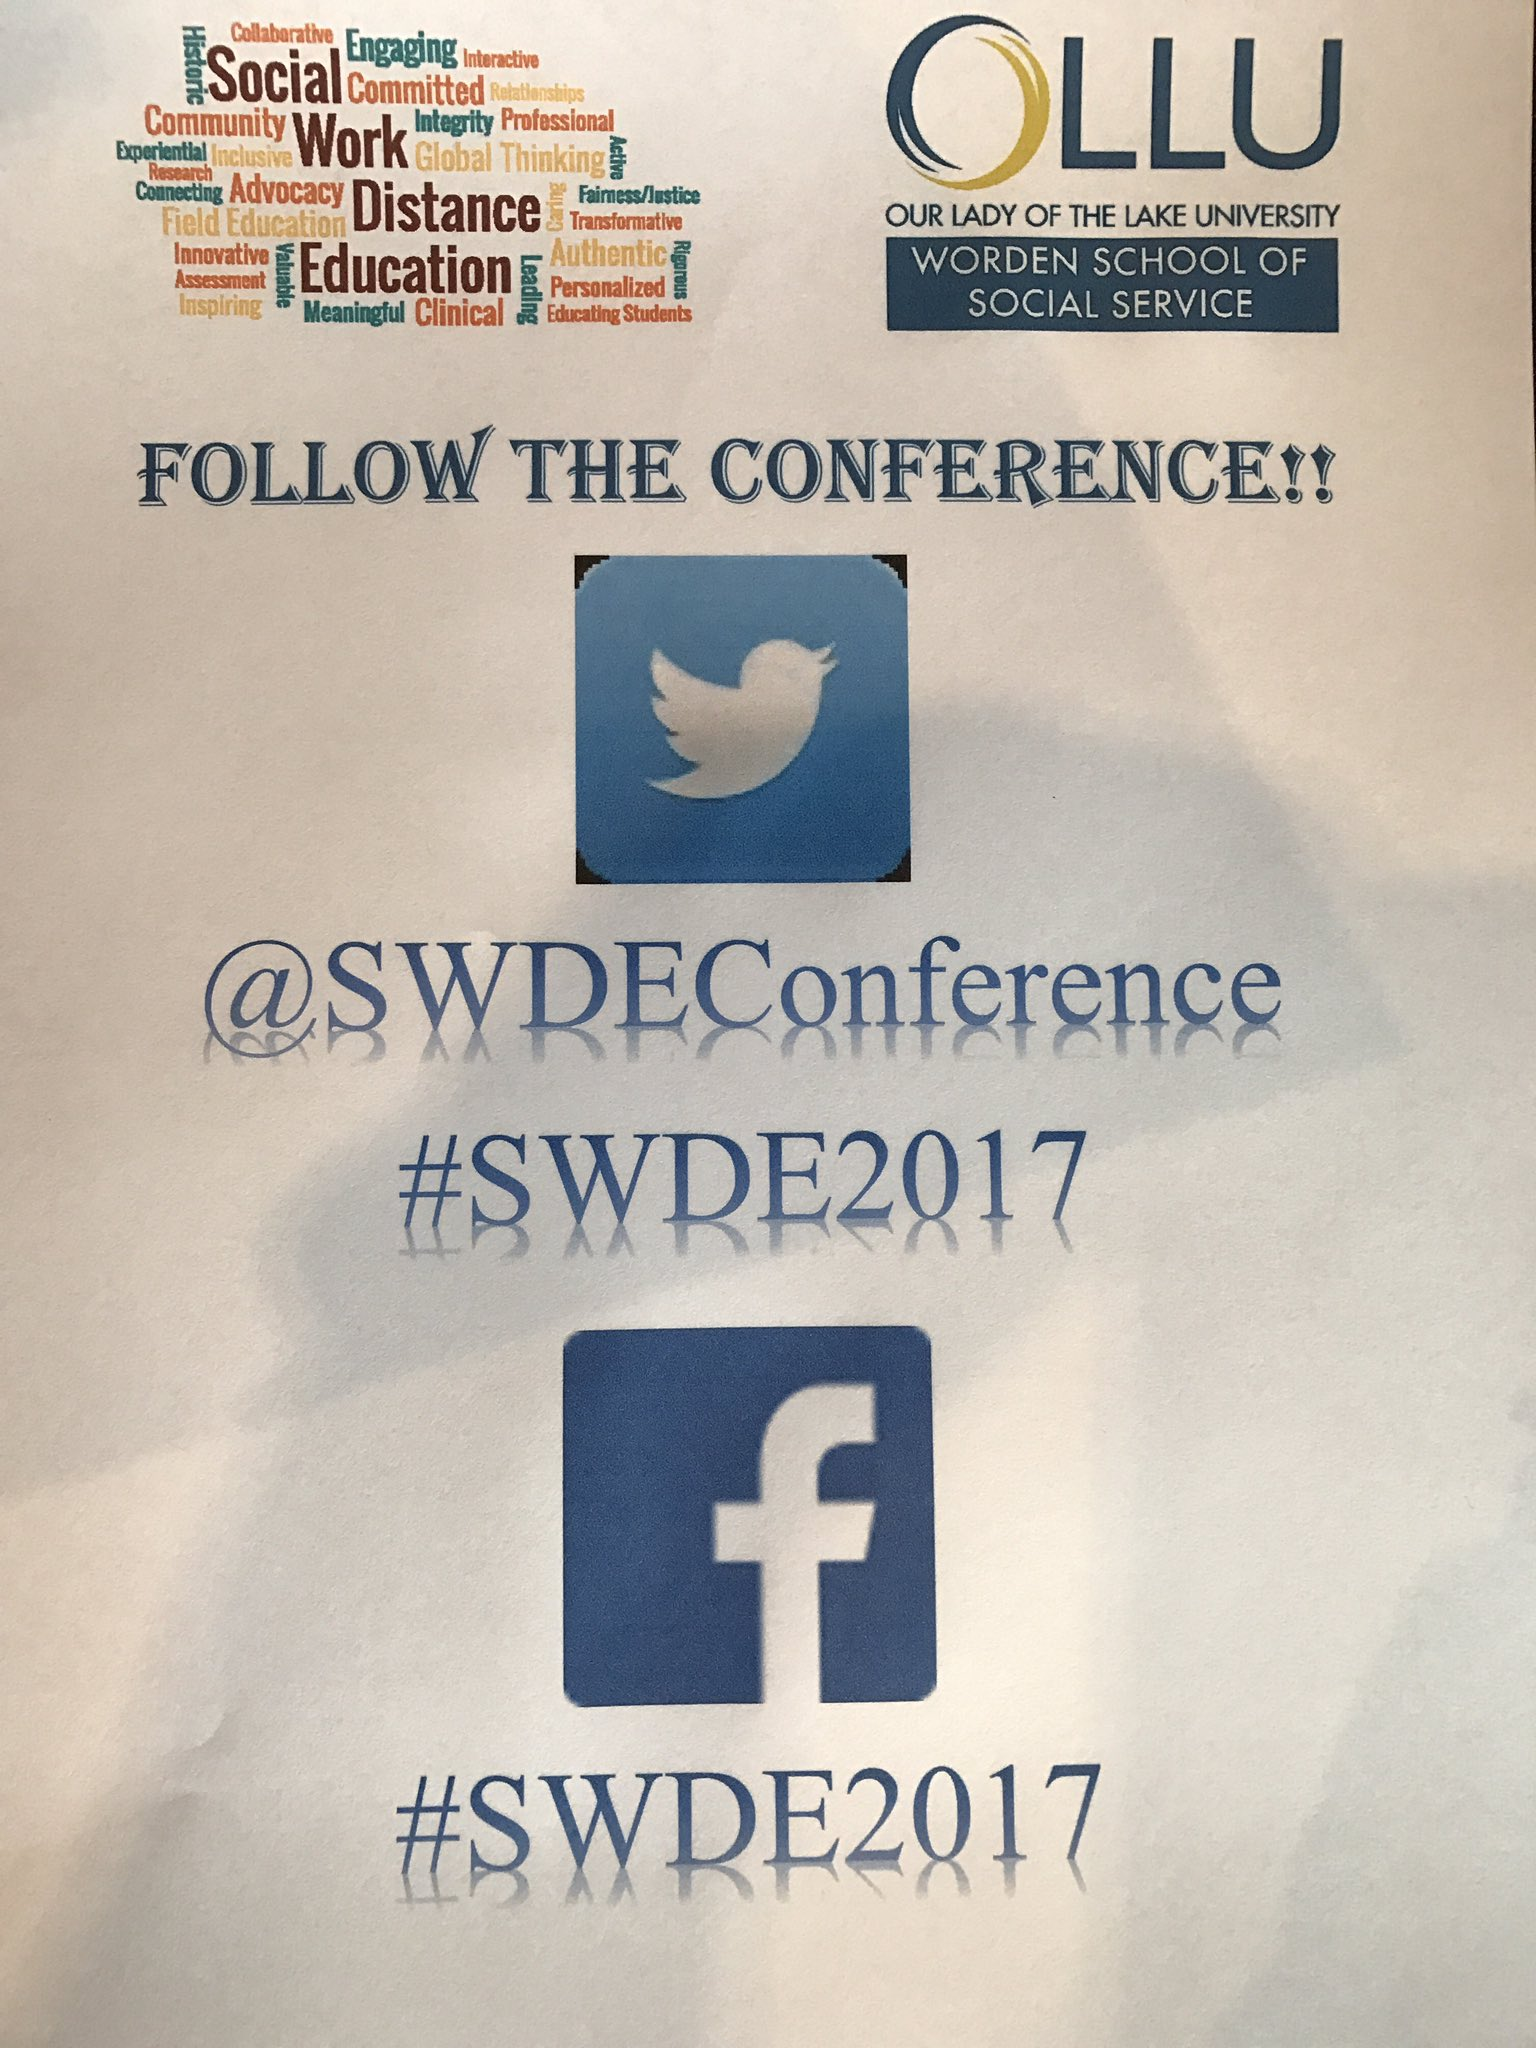 Don't forget to Tweet #SWDE2017 https://t.co/C4eaZmMDft